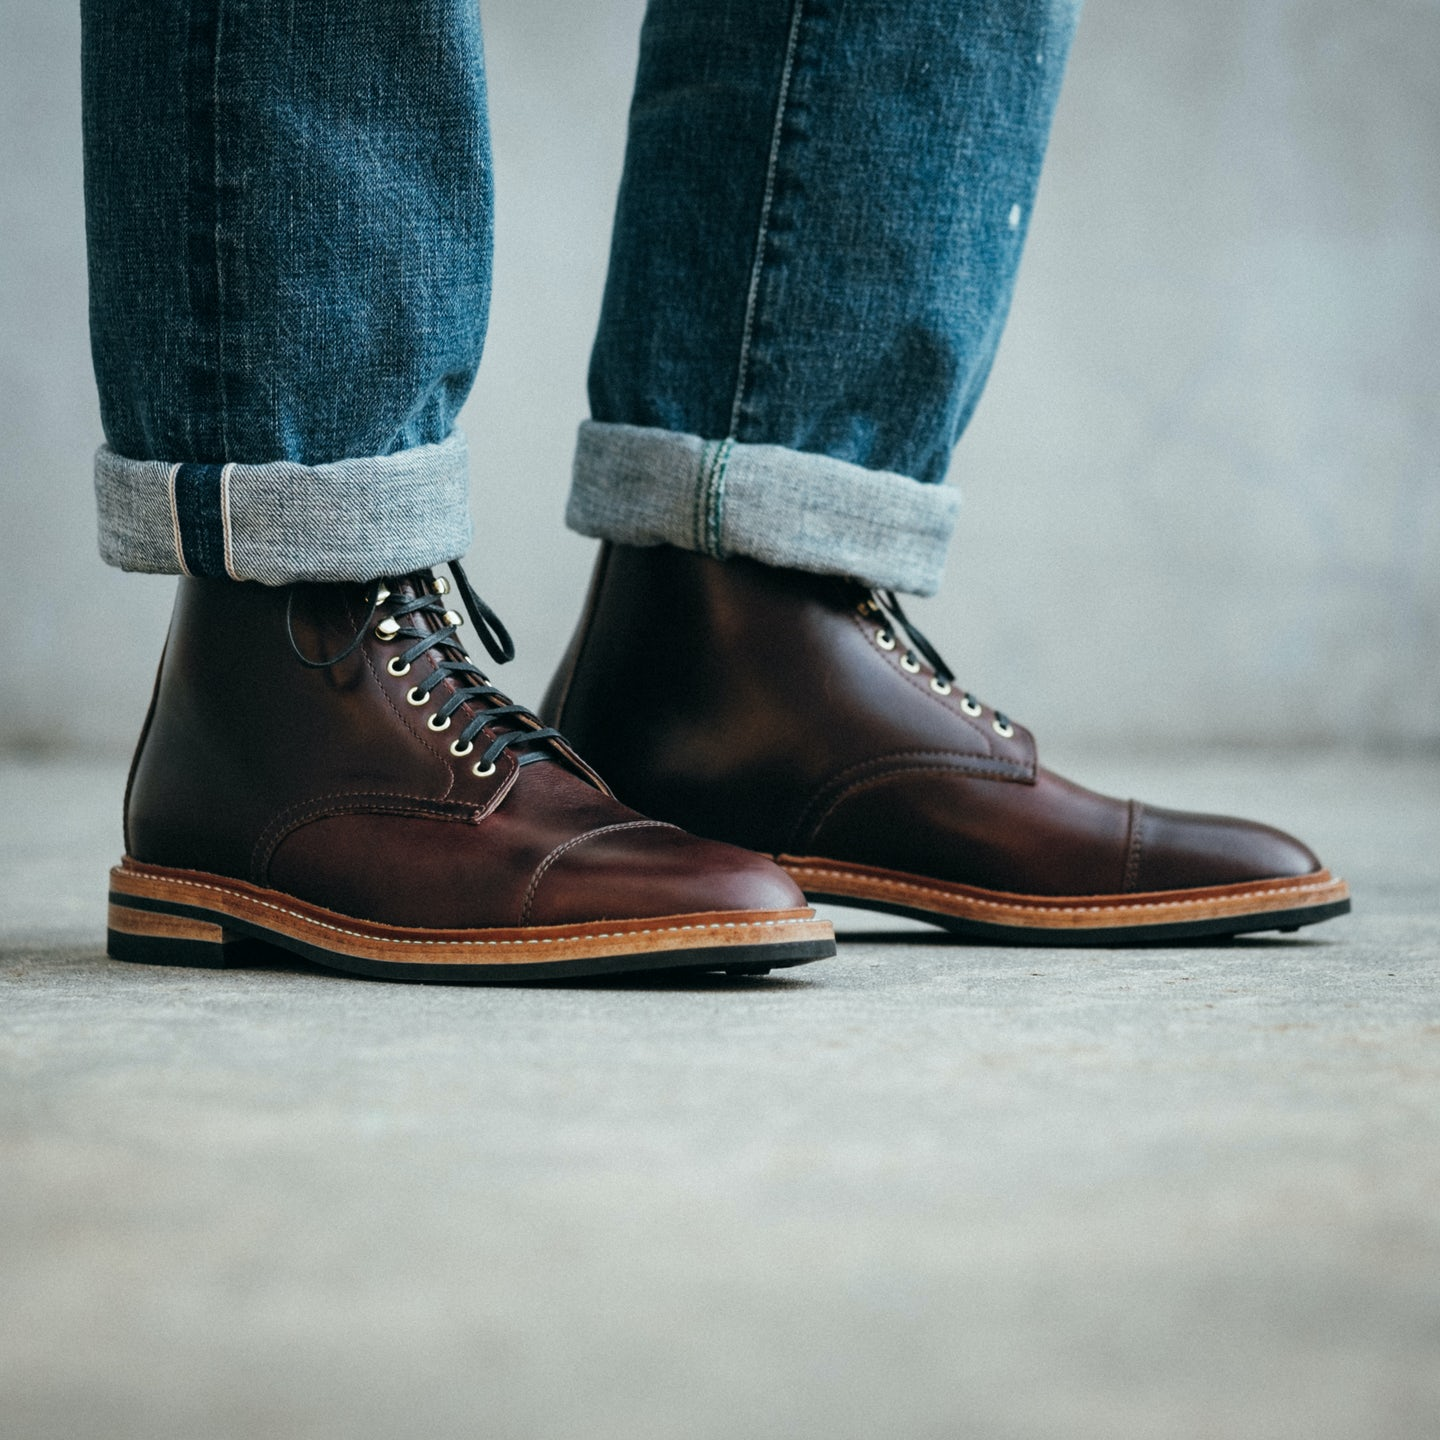 Color 8 Chromexcel Lakeshore Boot - Feature Image